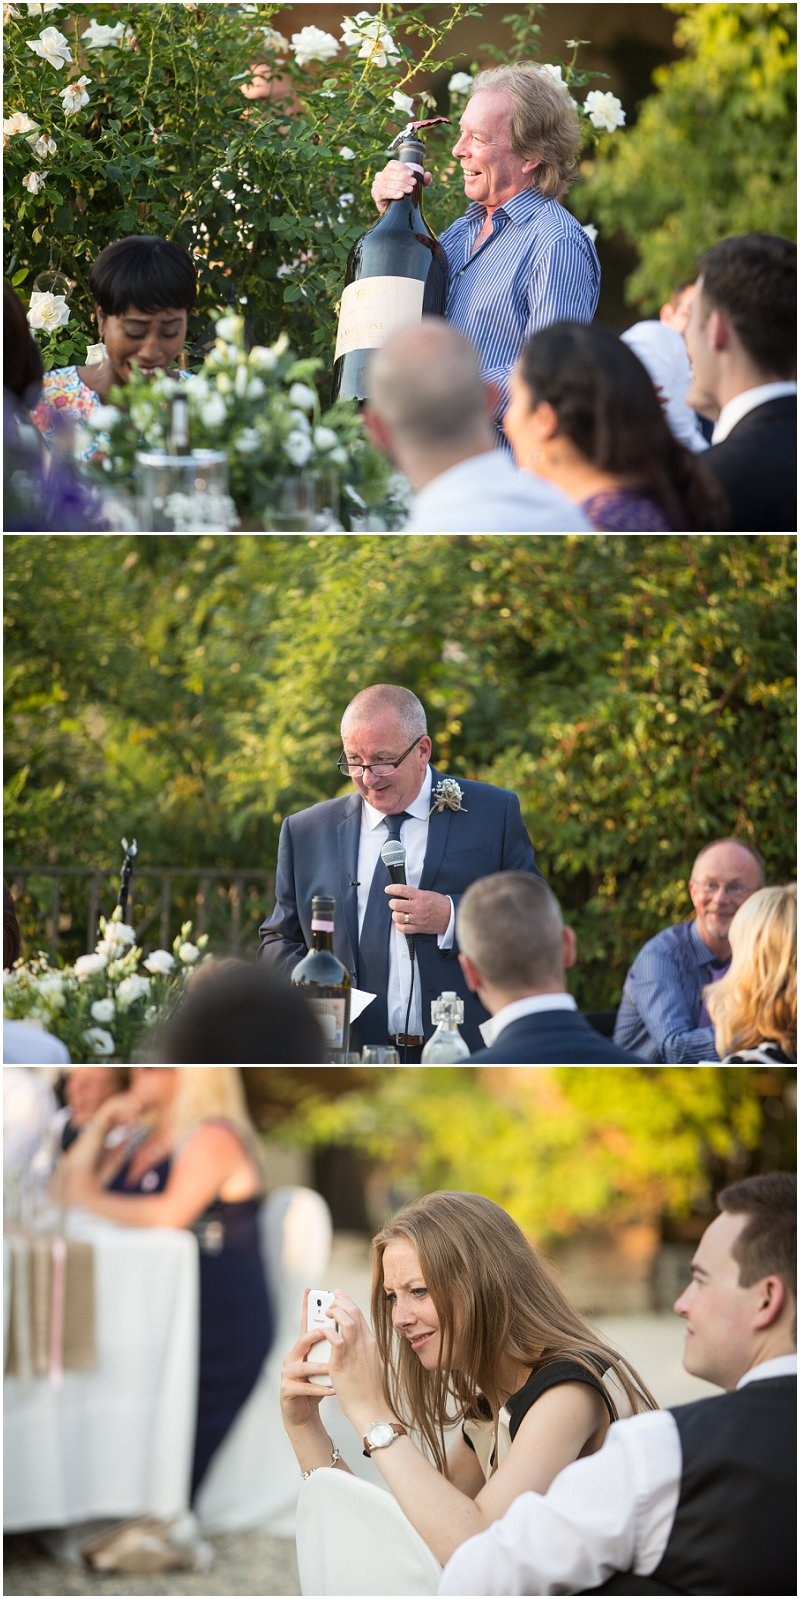 Father of the bride's speech during wedding ceremony in Italy